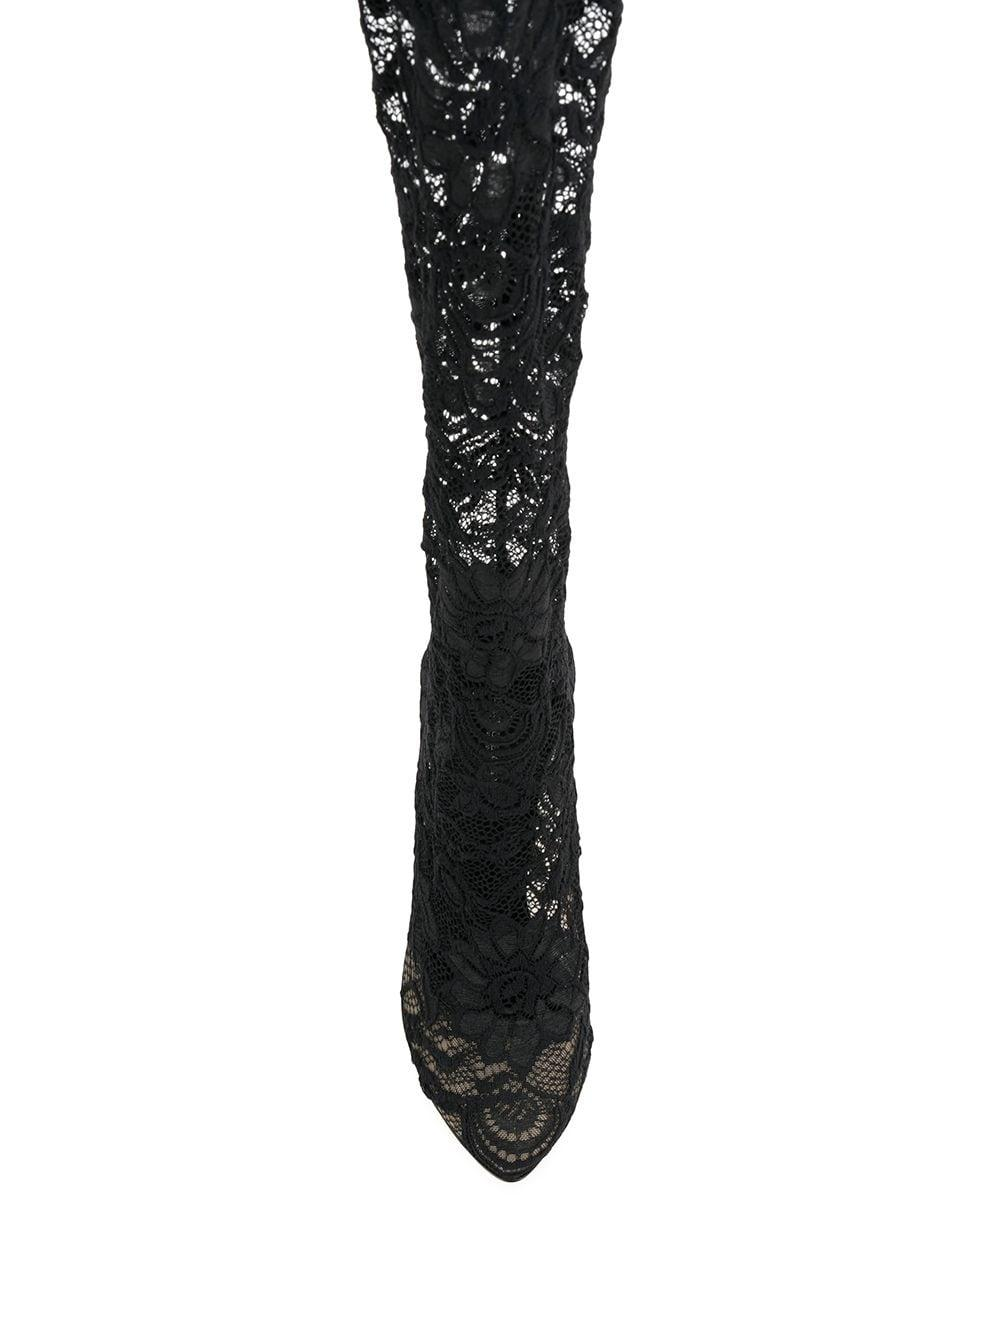 Dolce & Gabbana Lace Coco Thigh-high Boots in Black